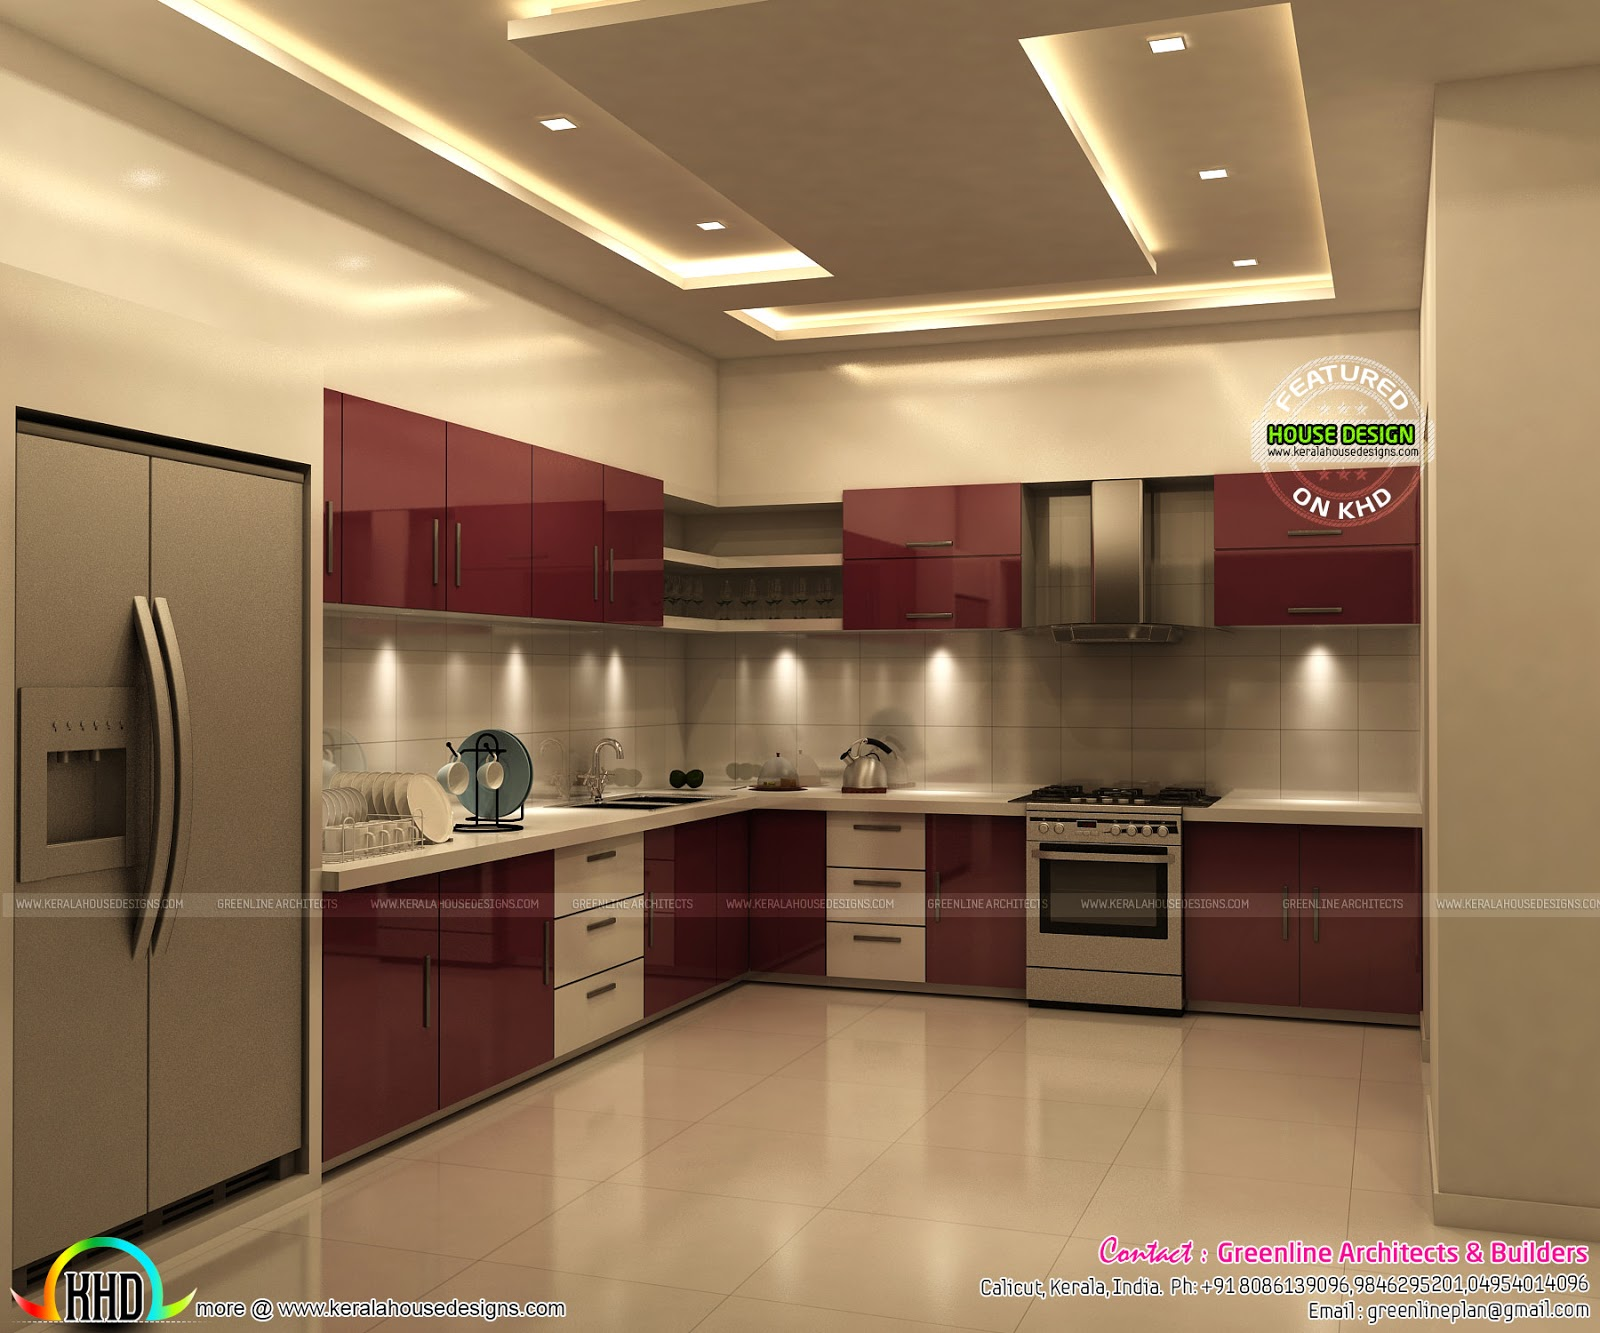 Superb kitchen and bedroom interiors kerala home design Kitchen interior design